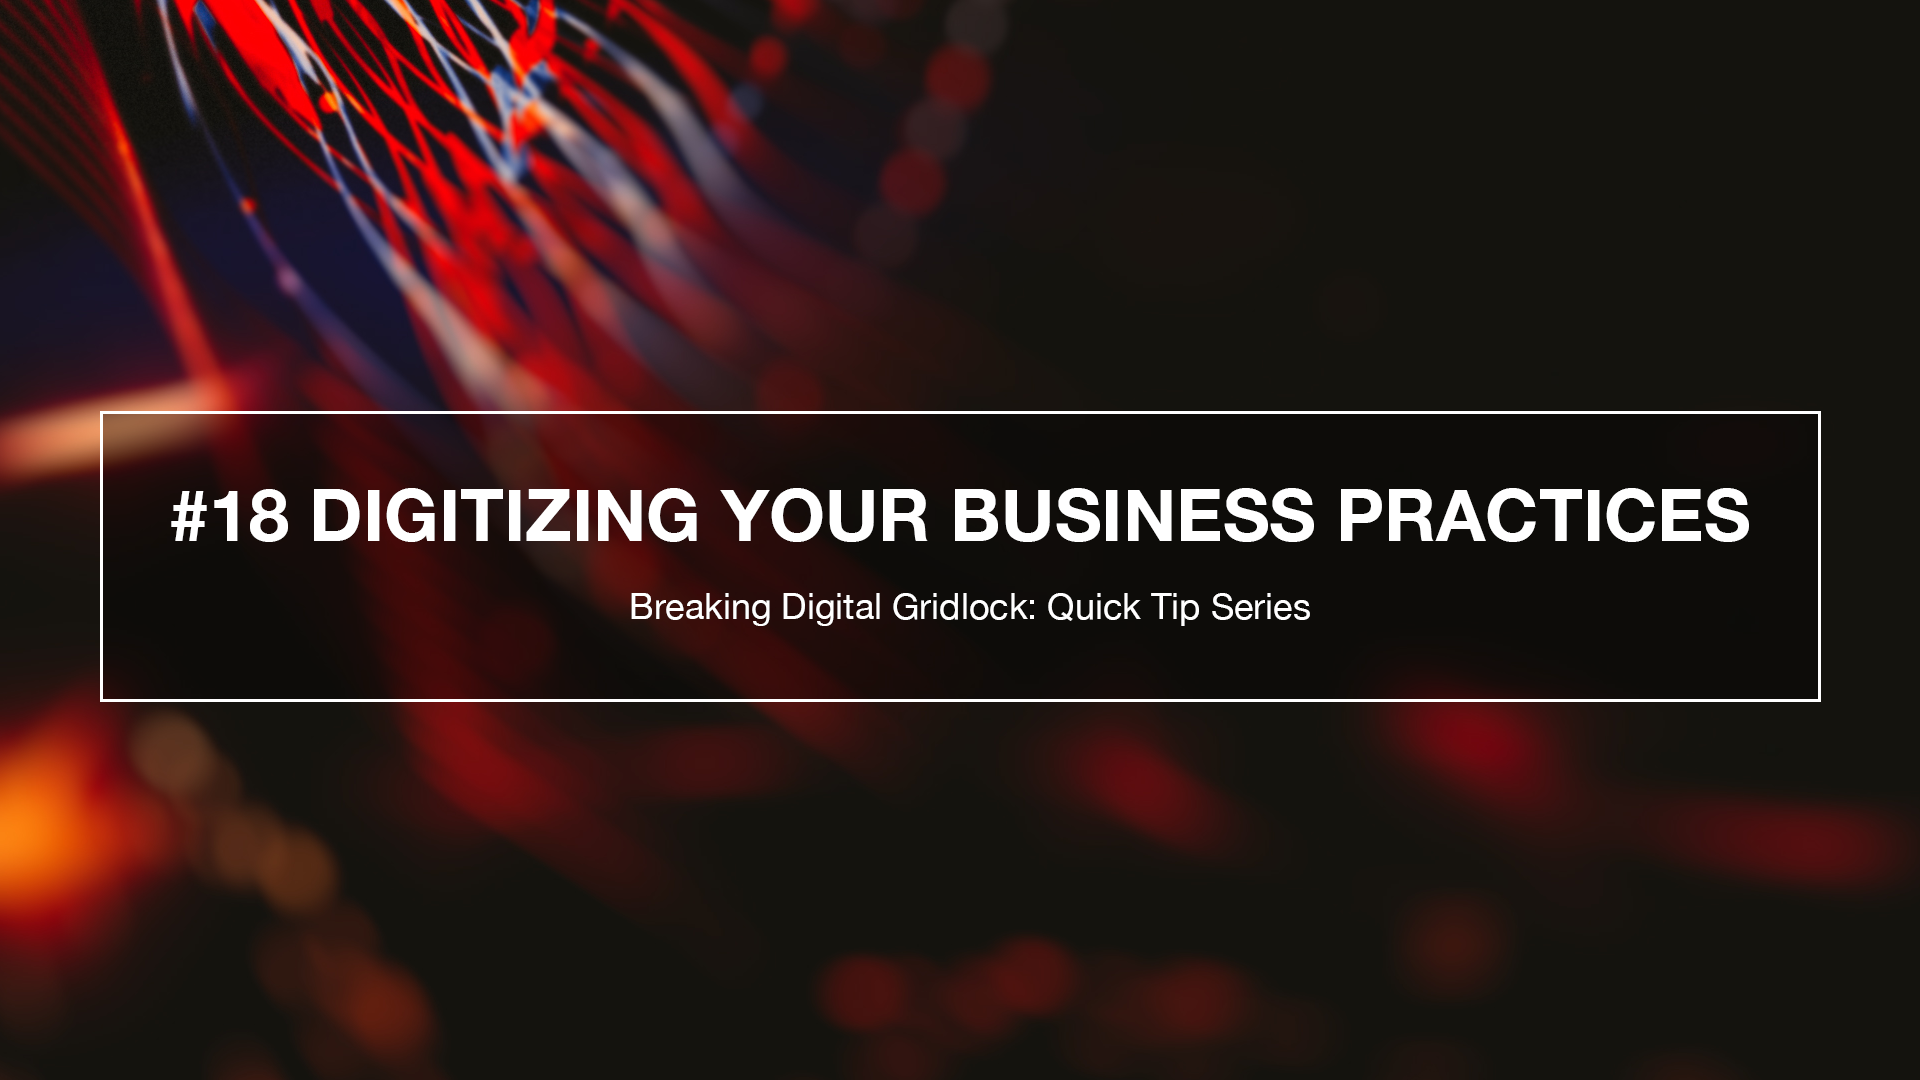 Breaking Weekly Digital Gridlock Tip #18: Digitizing Your Processes